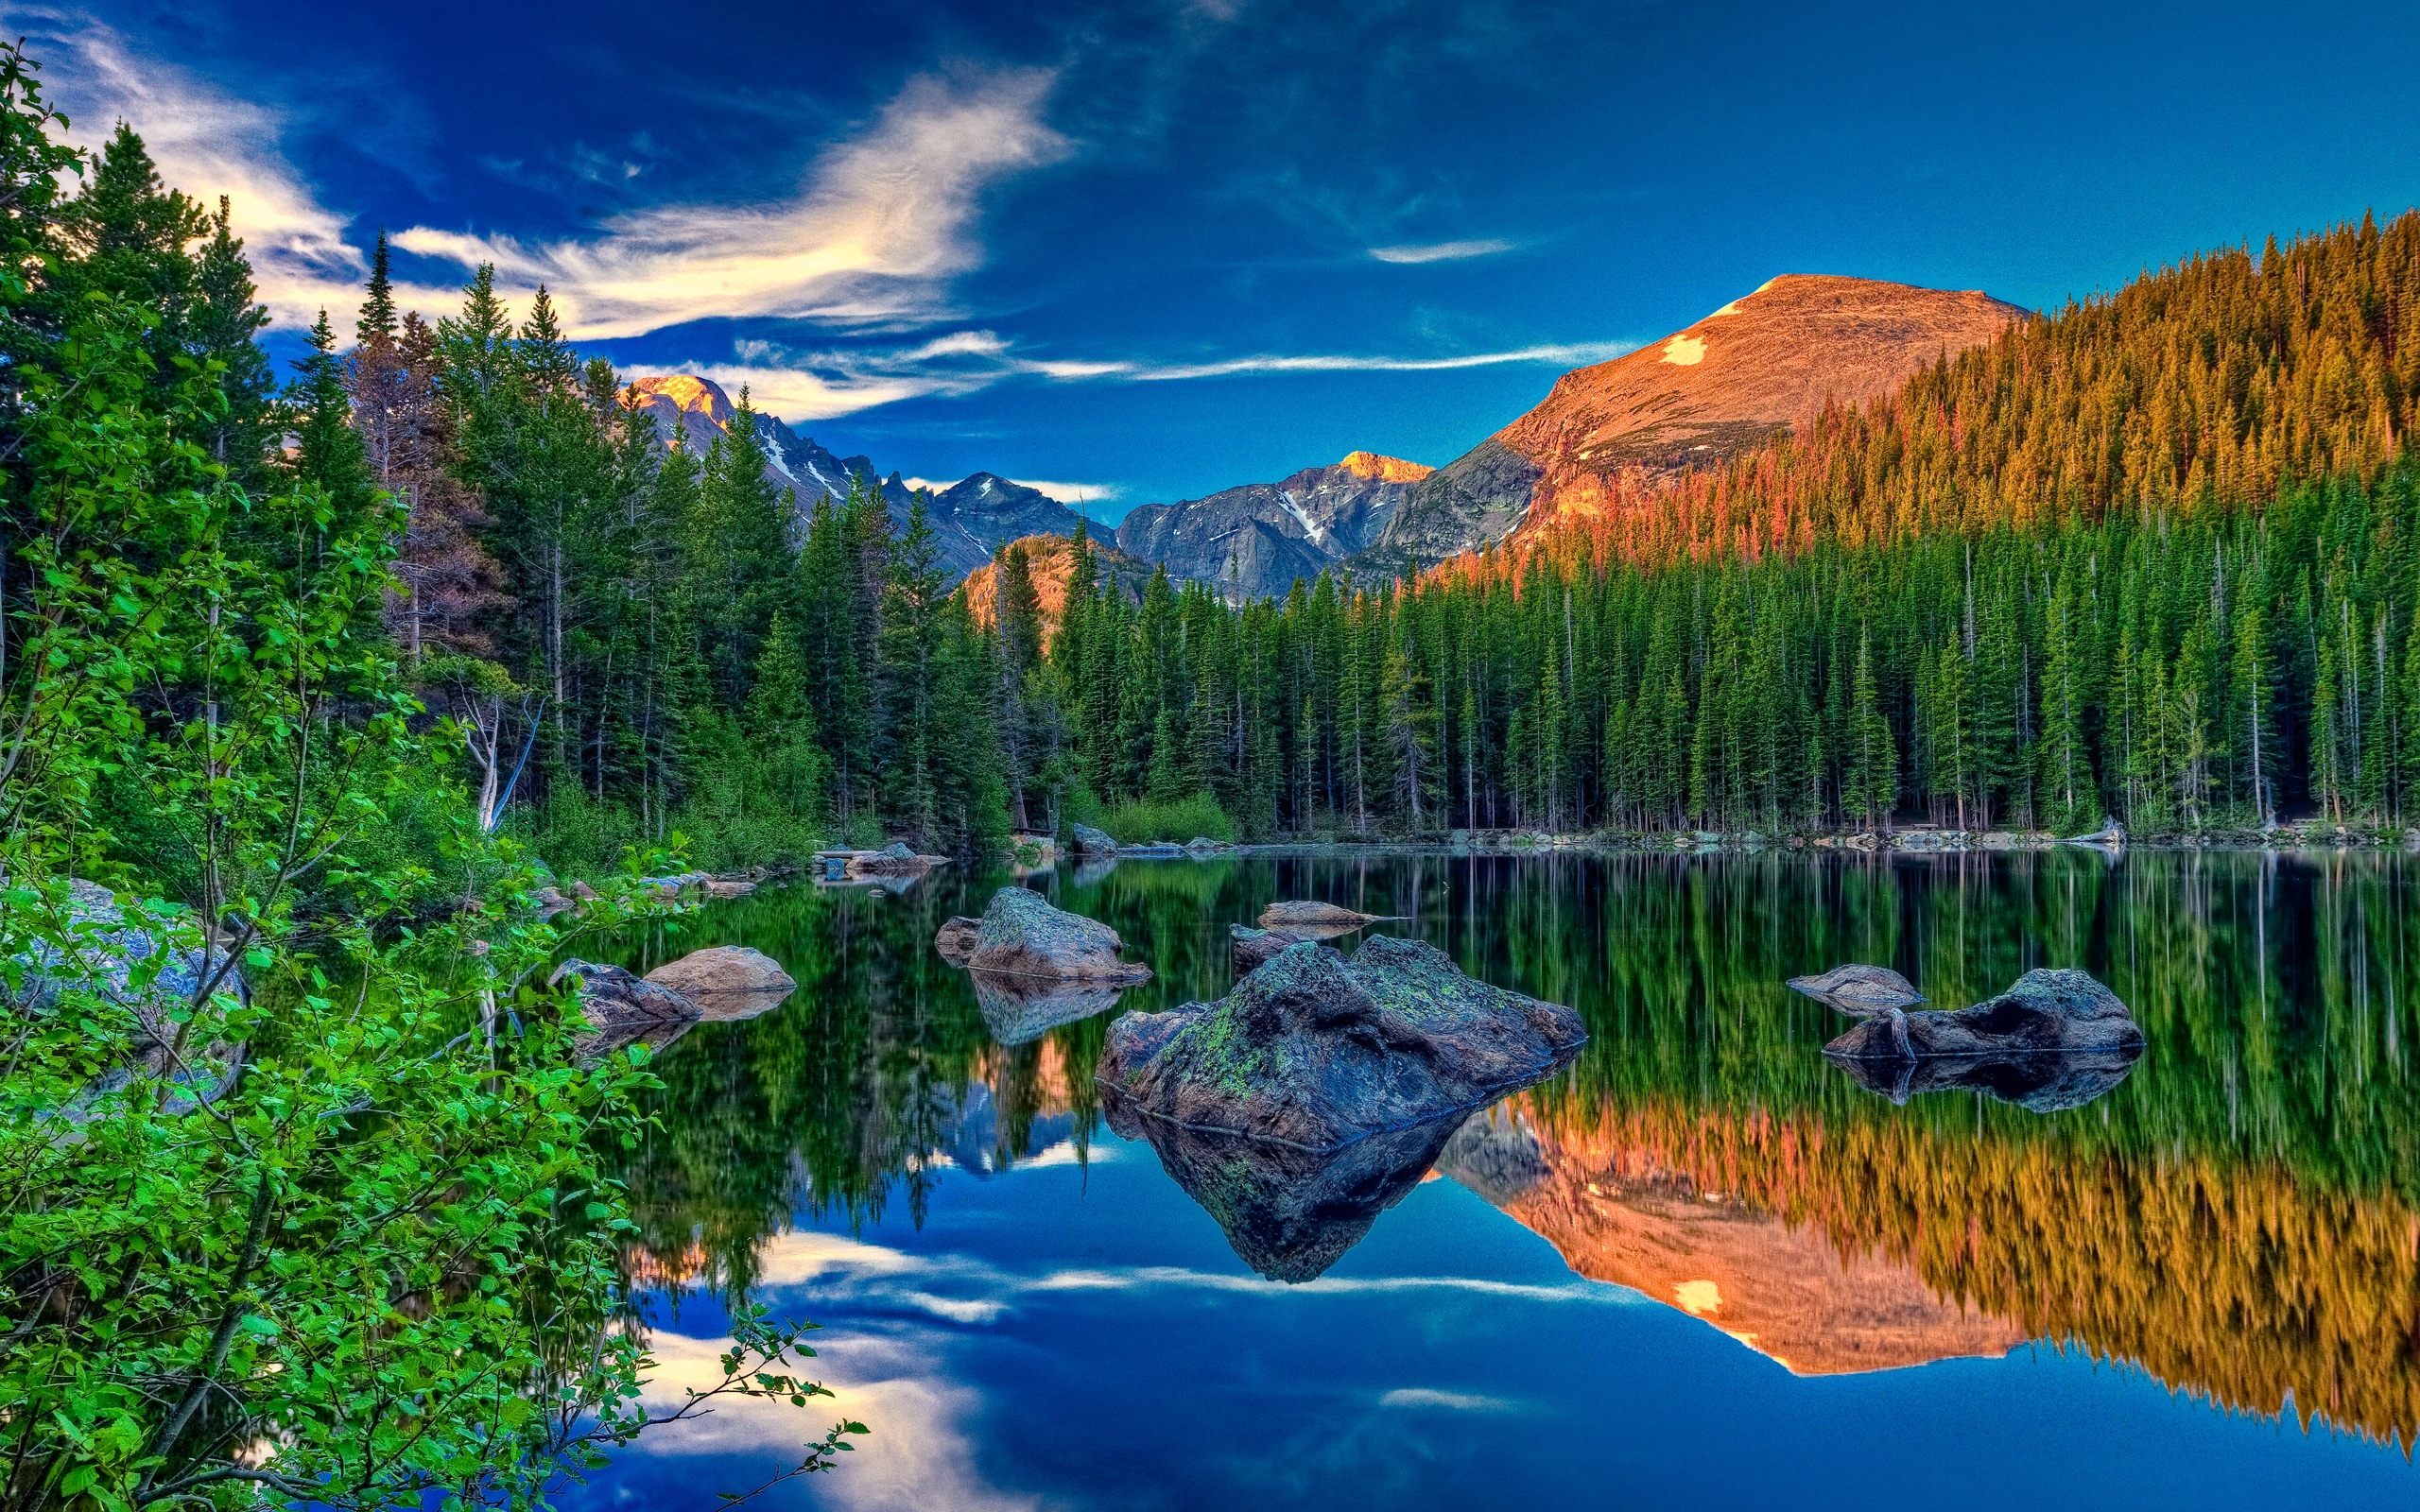 Beautiful Place in The World Wallpaper Beautiful Place Wallpaper 2560x1600